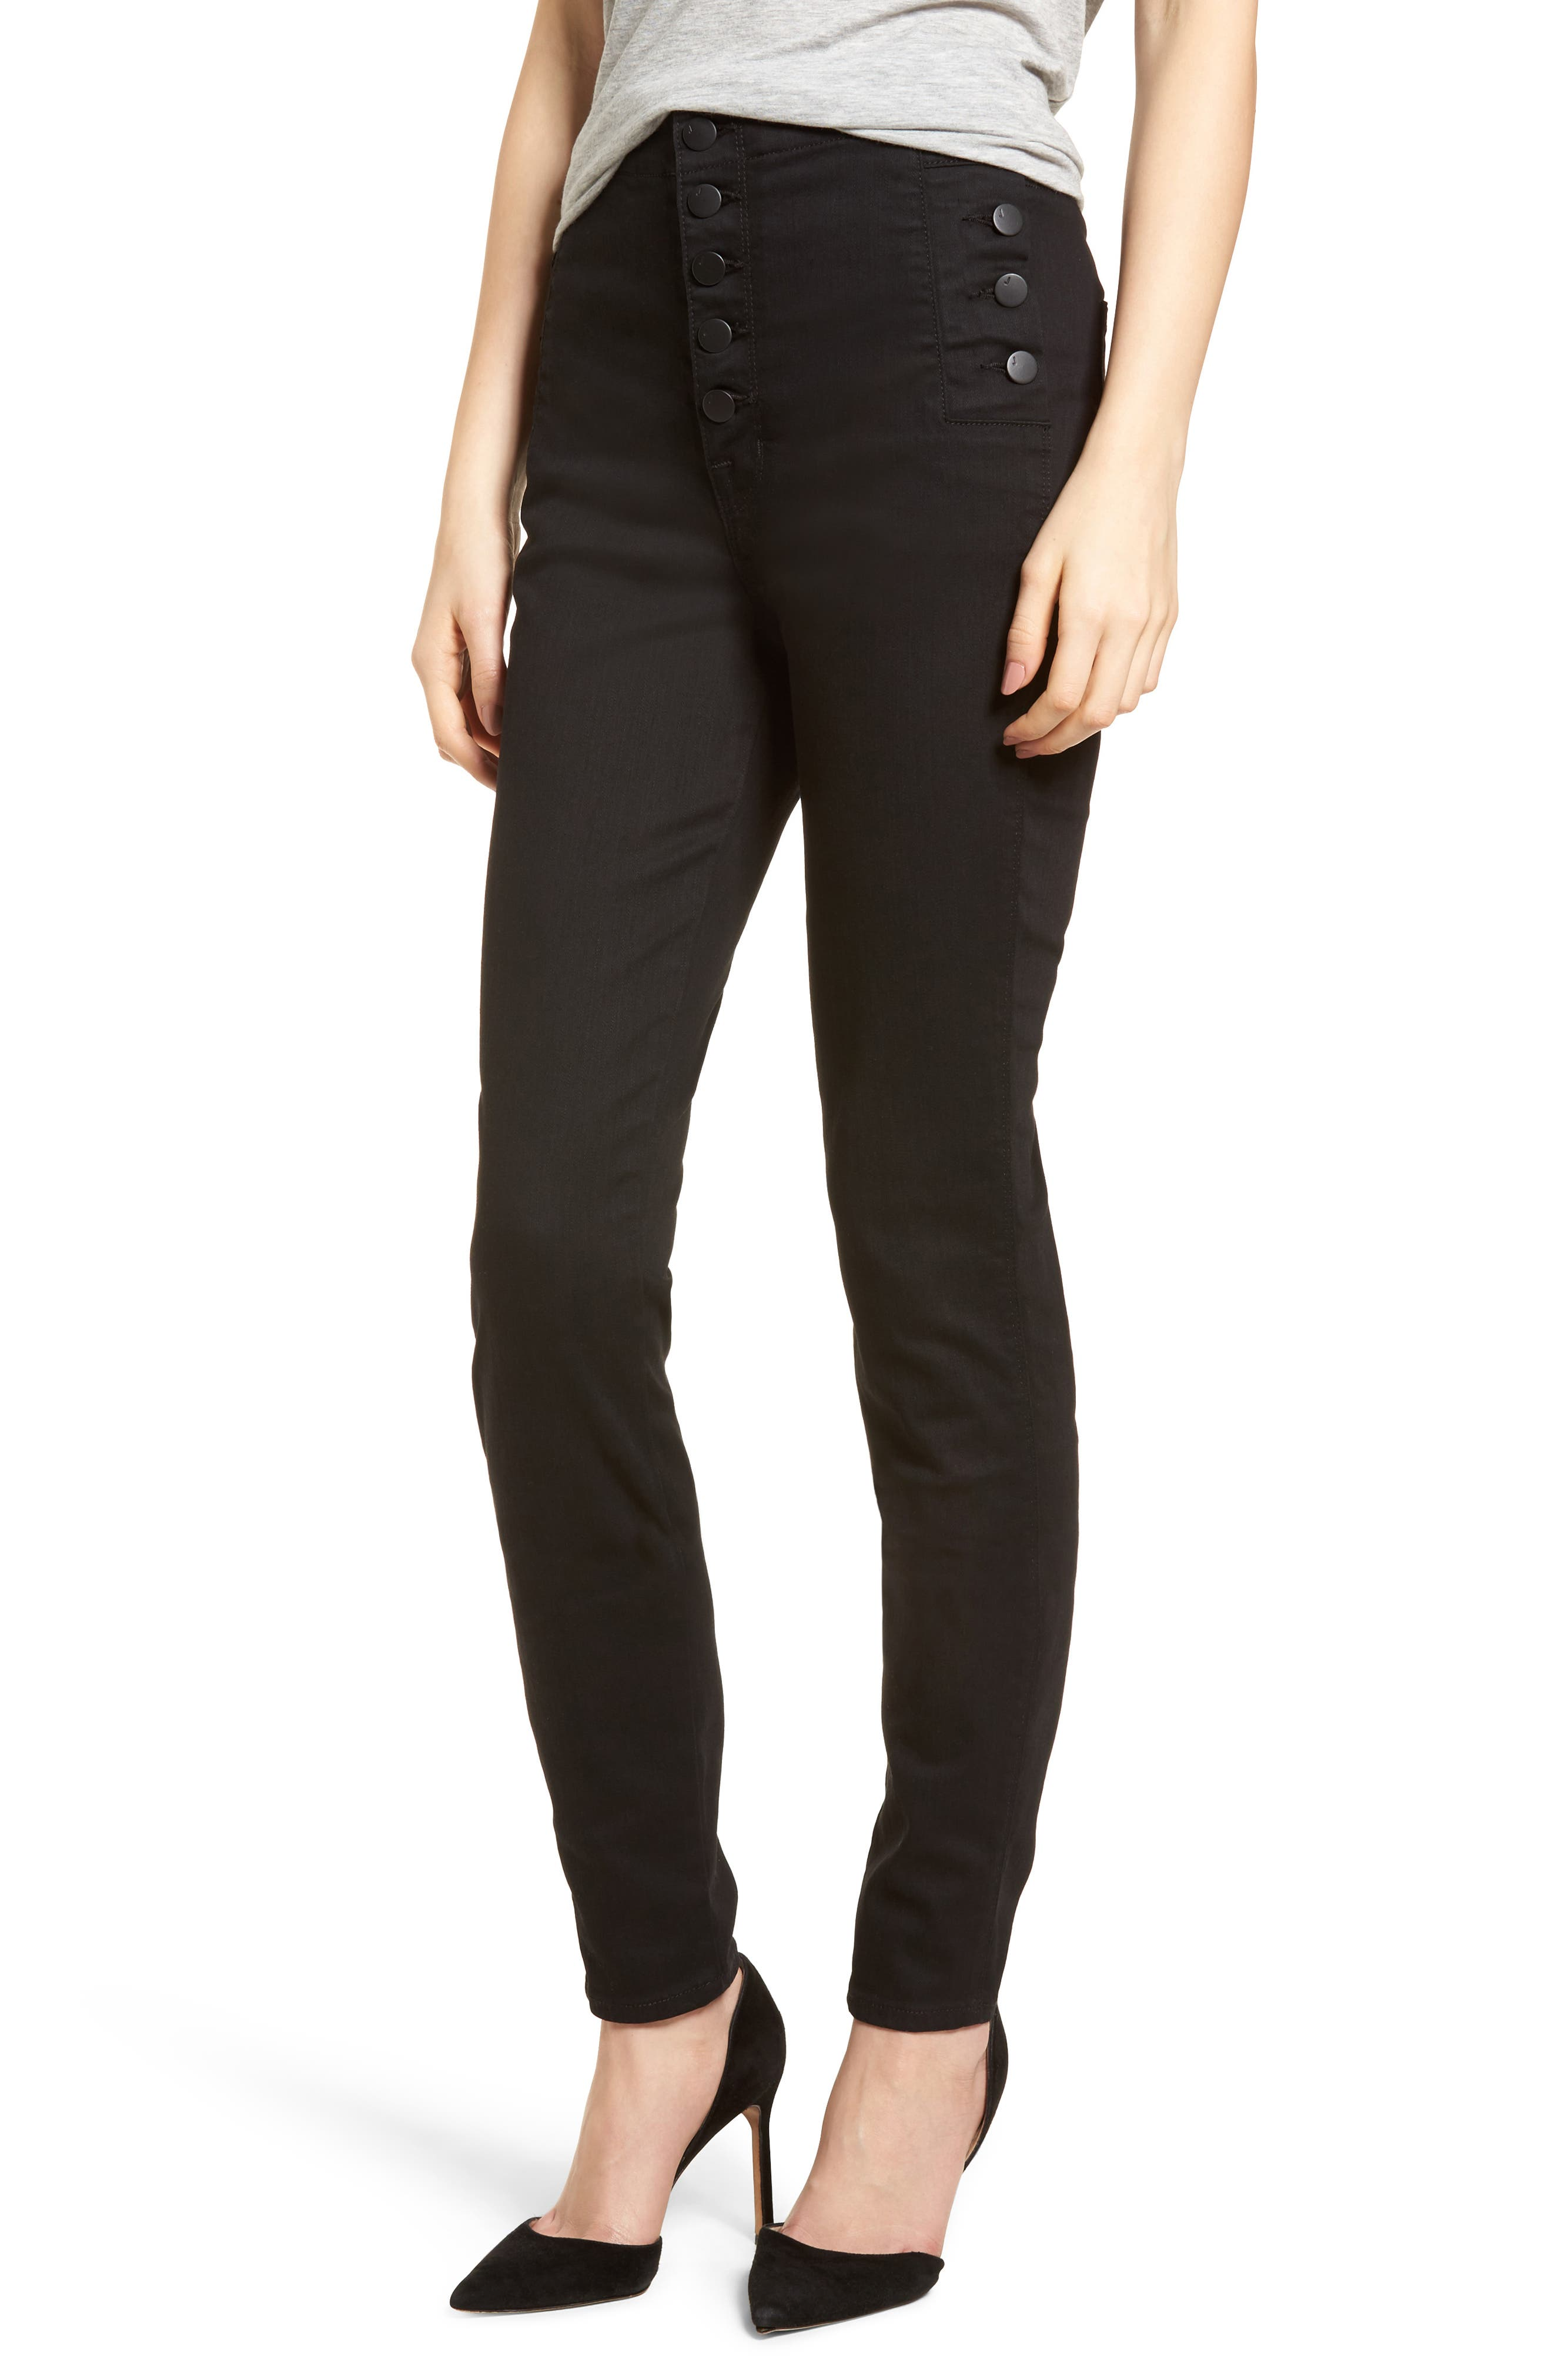 Natasha Photoready High Waist Skinny Jeans,                             Main thumbnail 1, color,                             Vanity